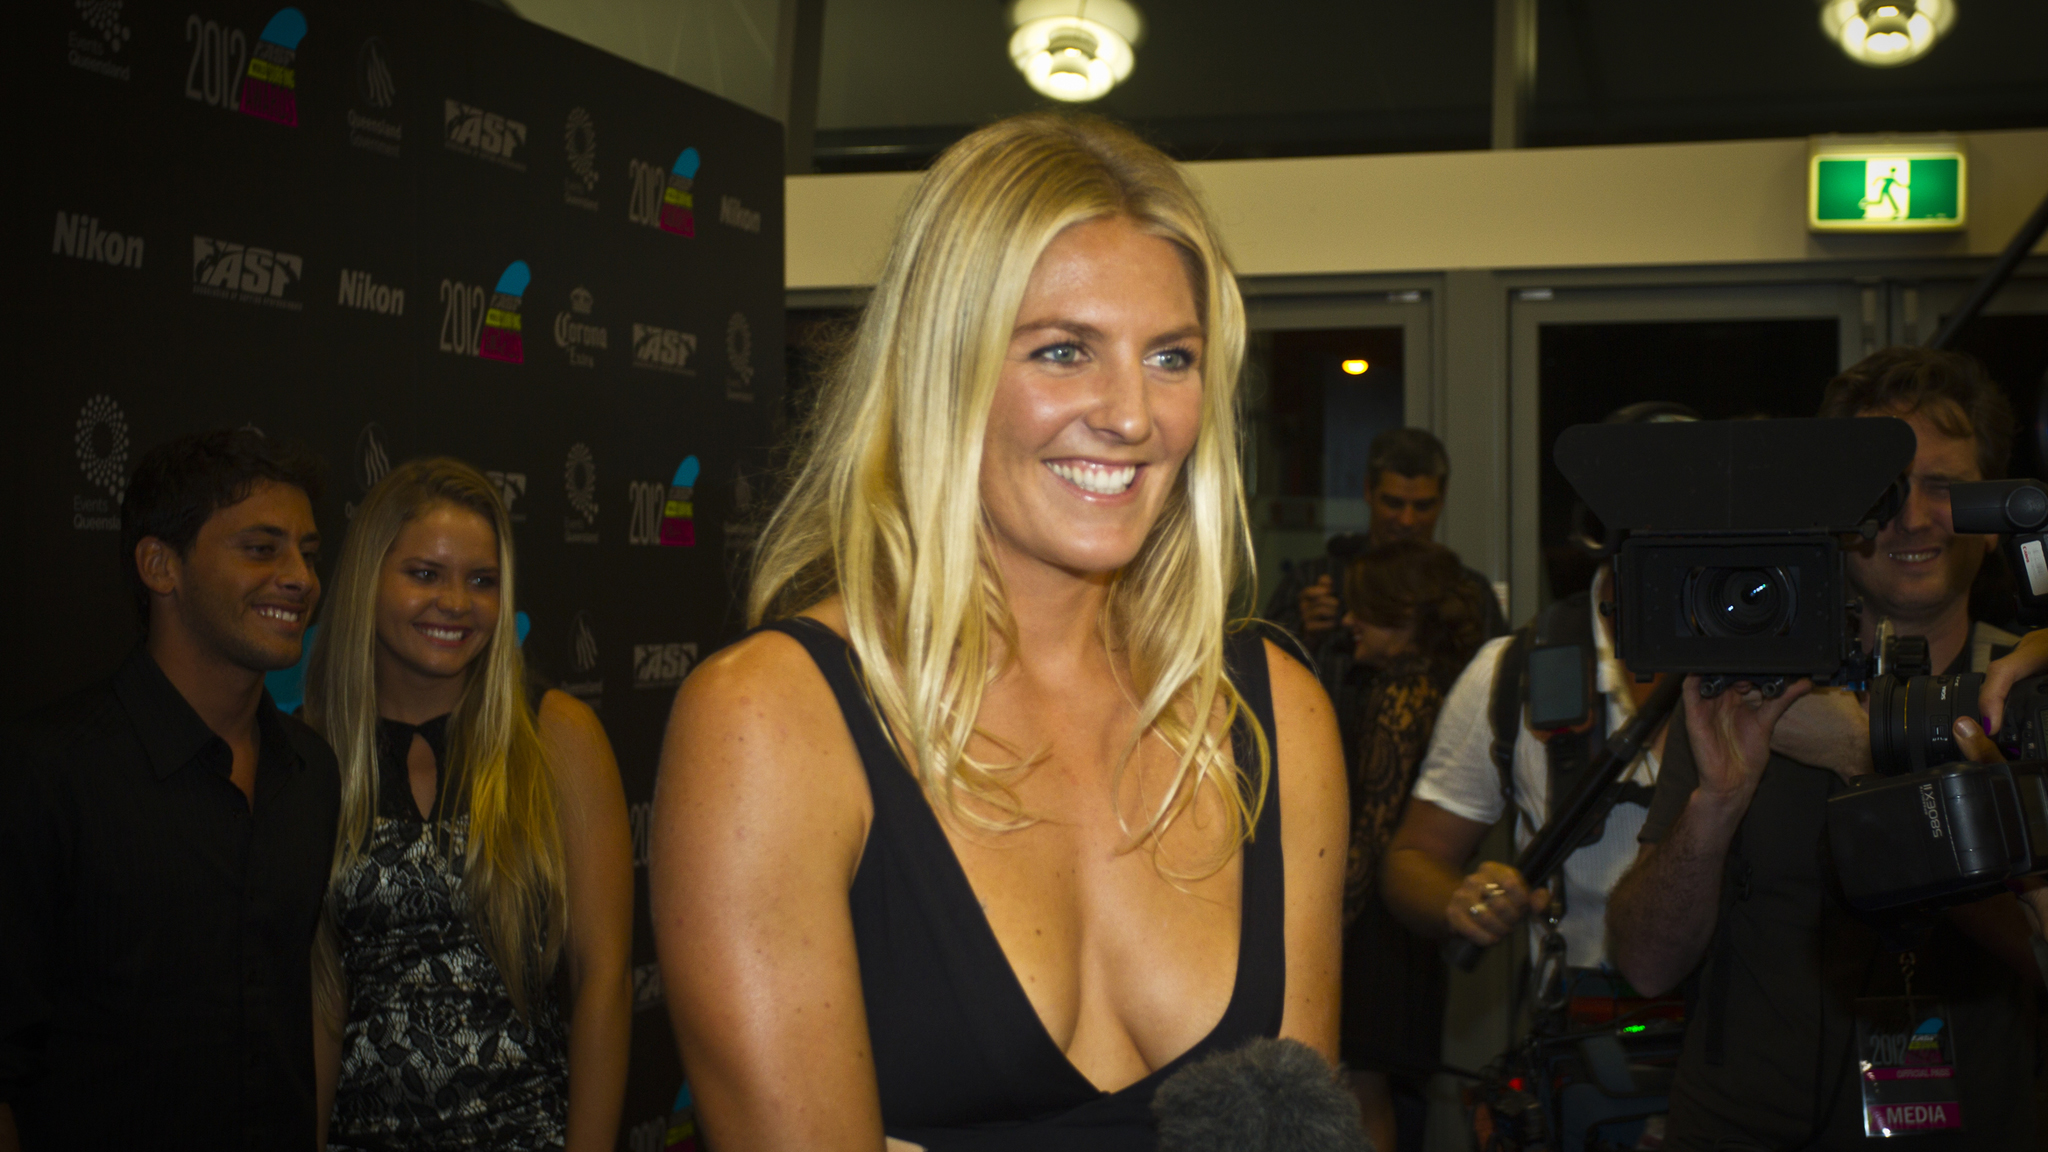 Ressurection of Steph Gilmore